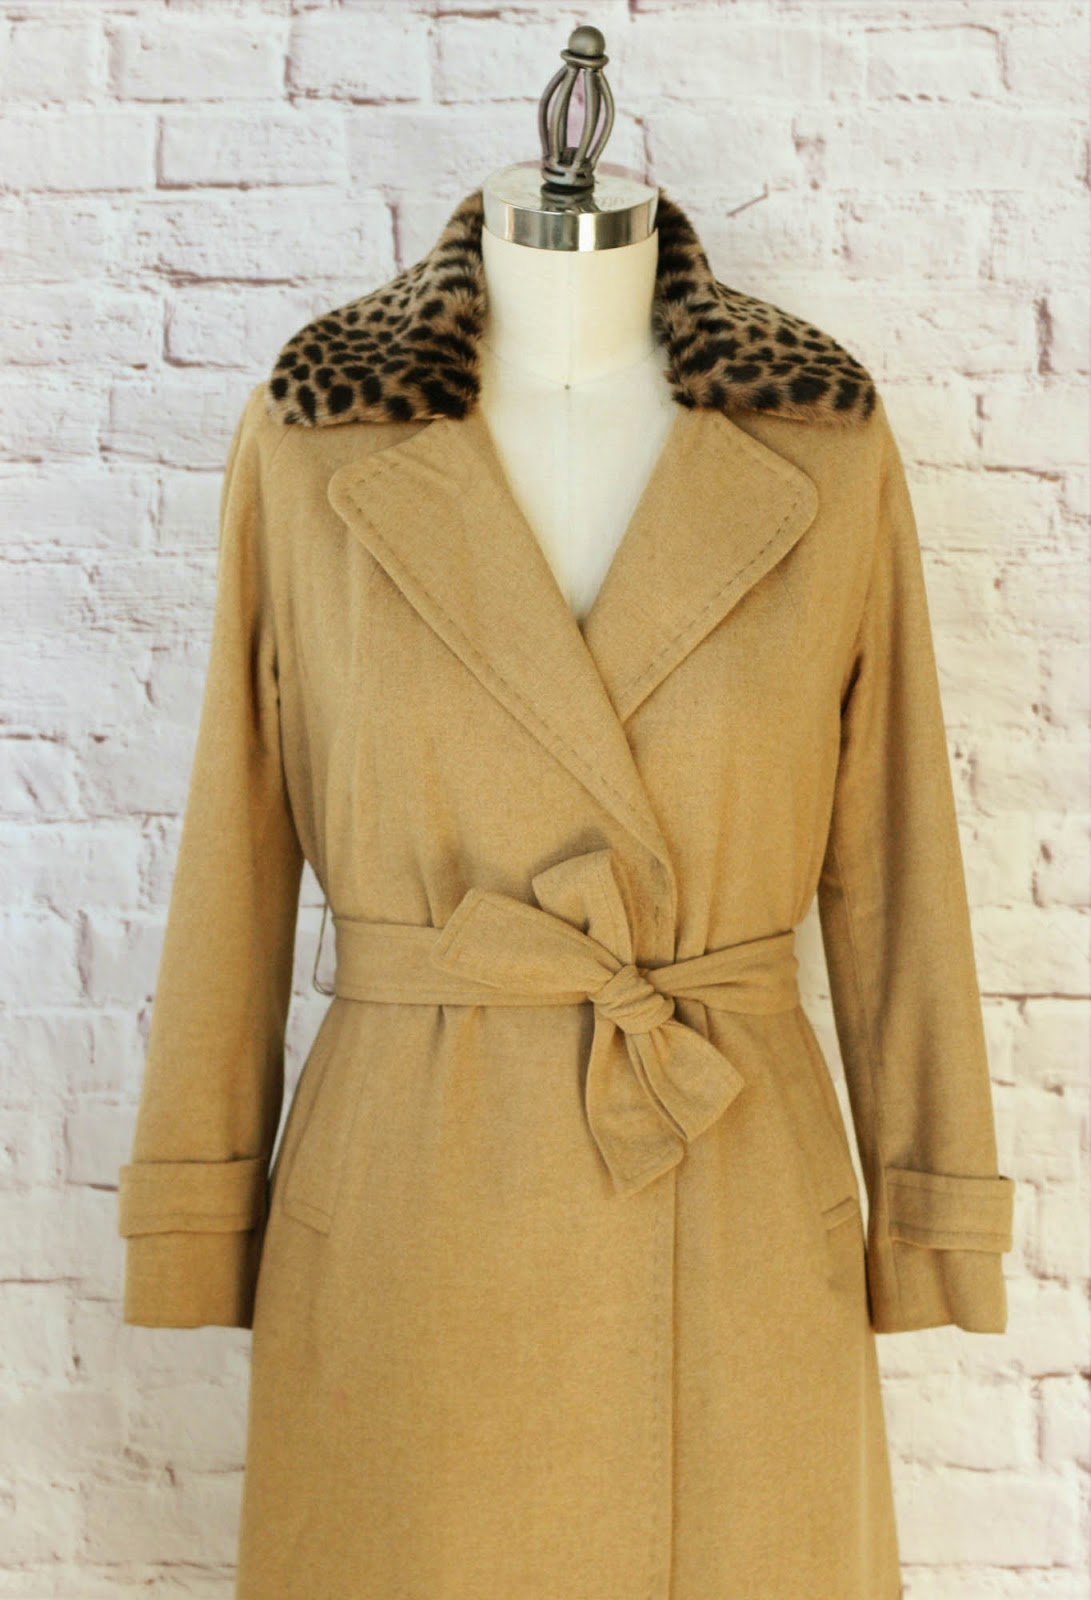 http://www.coletterie.com/tutorials-tips-tricks/removable-custom-faux-fur-collar-for-your-coat